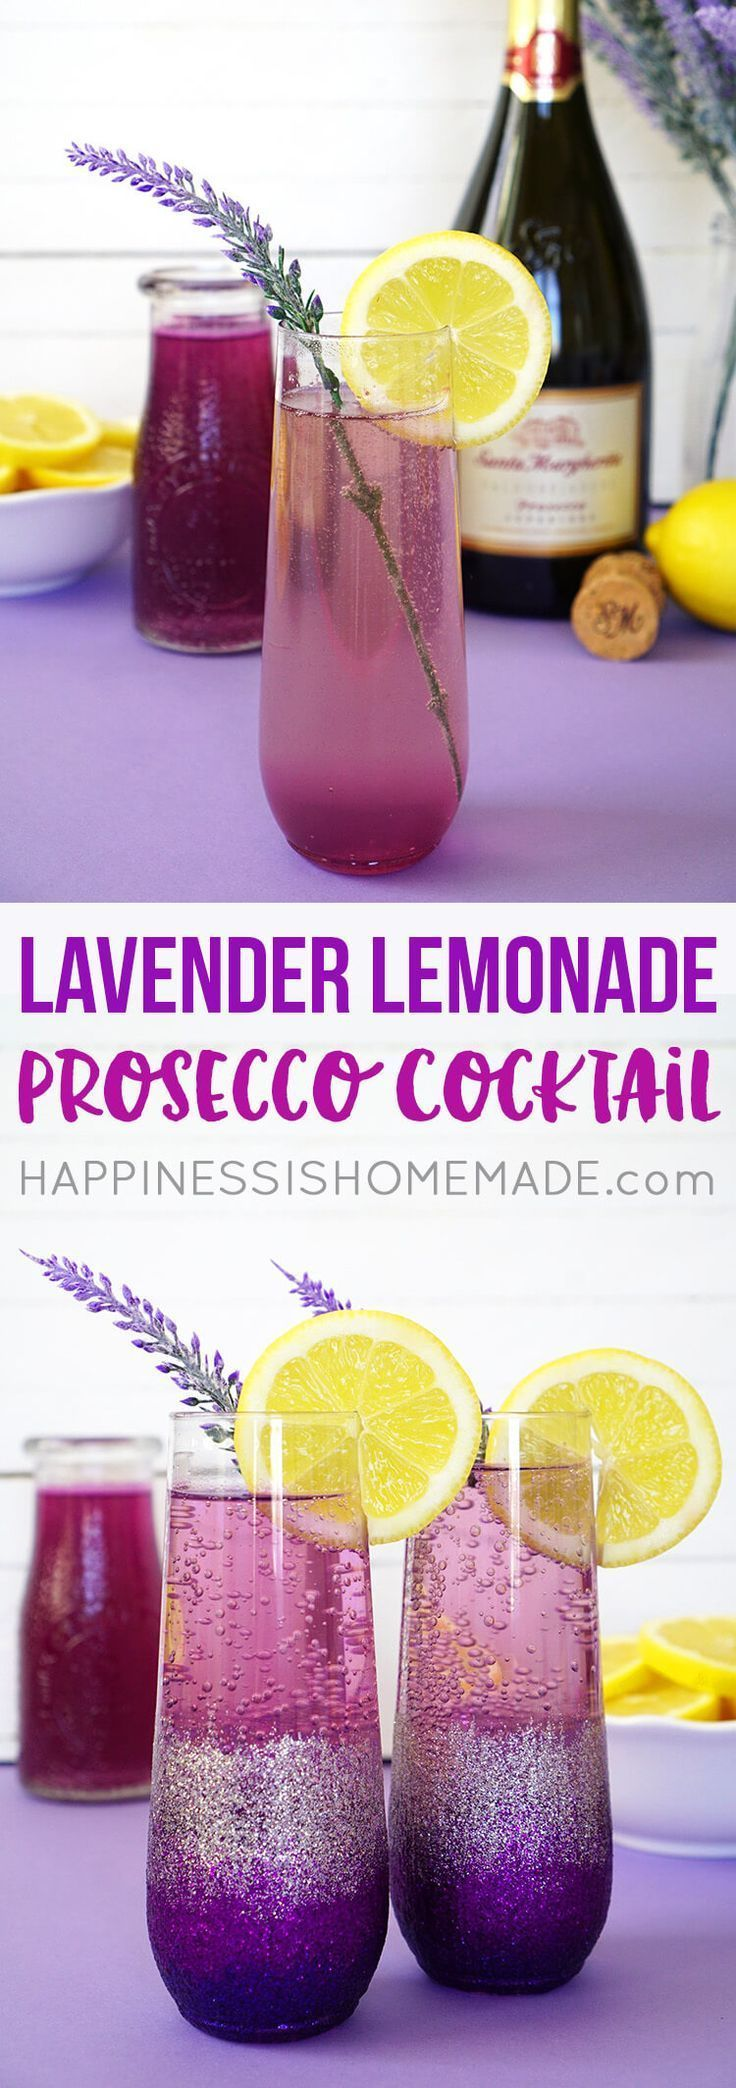 Lavender Lemonade Prosecco Cocktails + DIY Ombre Glitter Champagne Glasses are the perfect pair for a Sunday Brunch with your favorite girlfriends! - Get the Prosecco cocktail recipe and the full how-to glitter glasses tutorial details @hiHomemadeBlog #